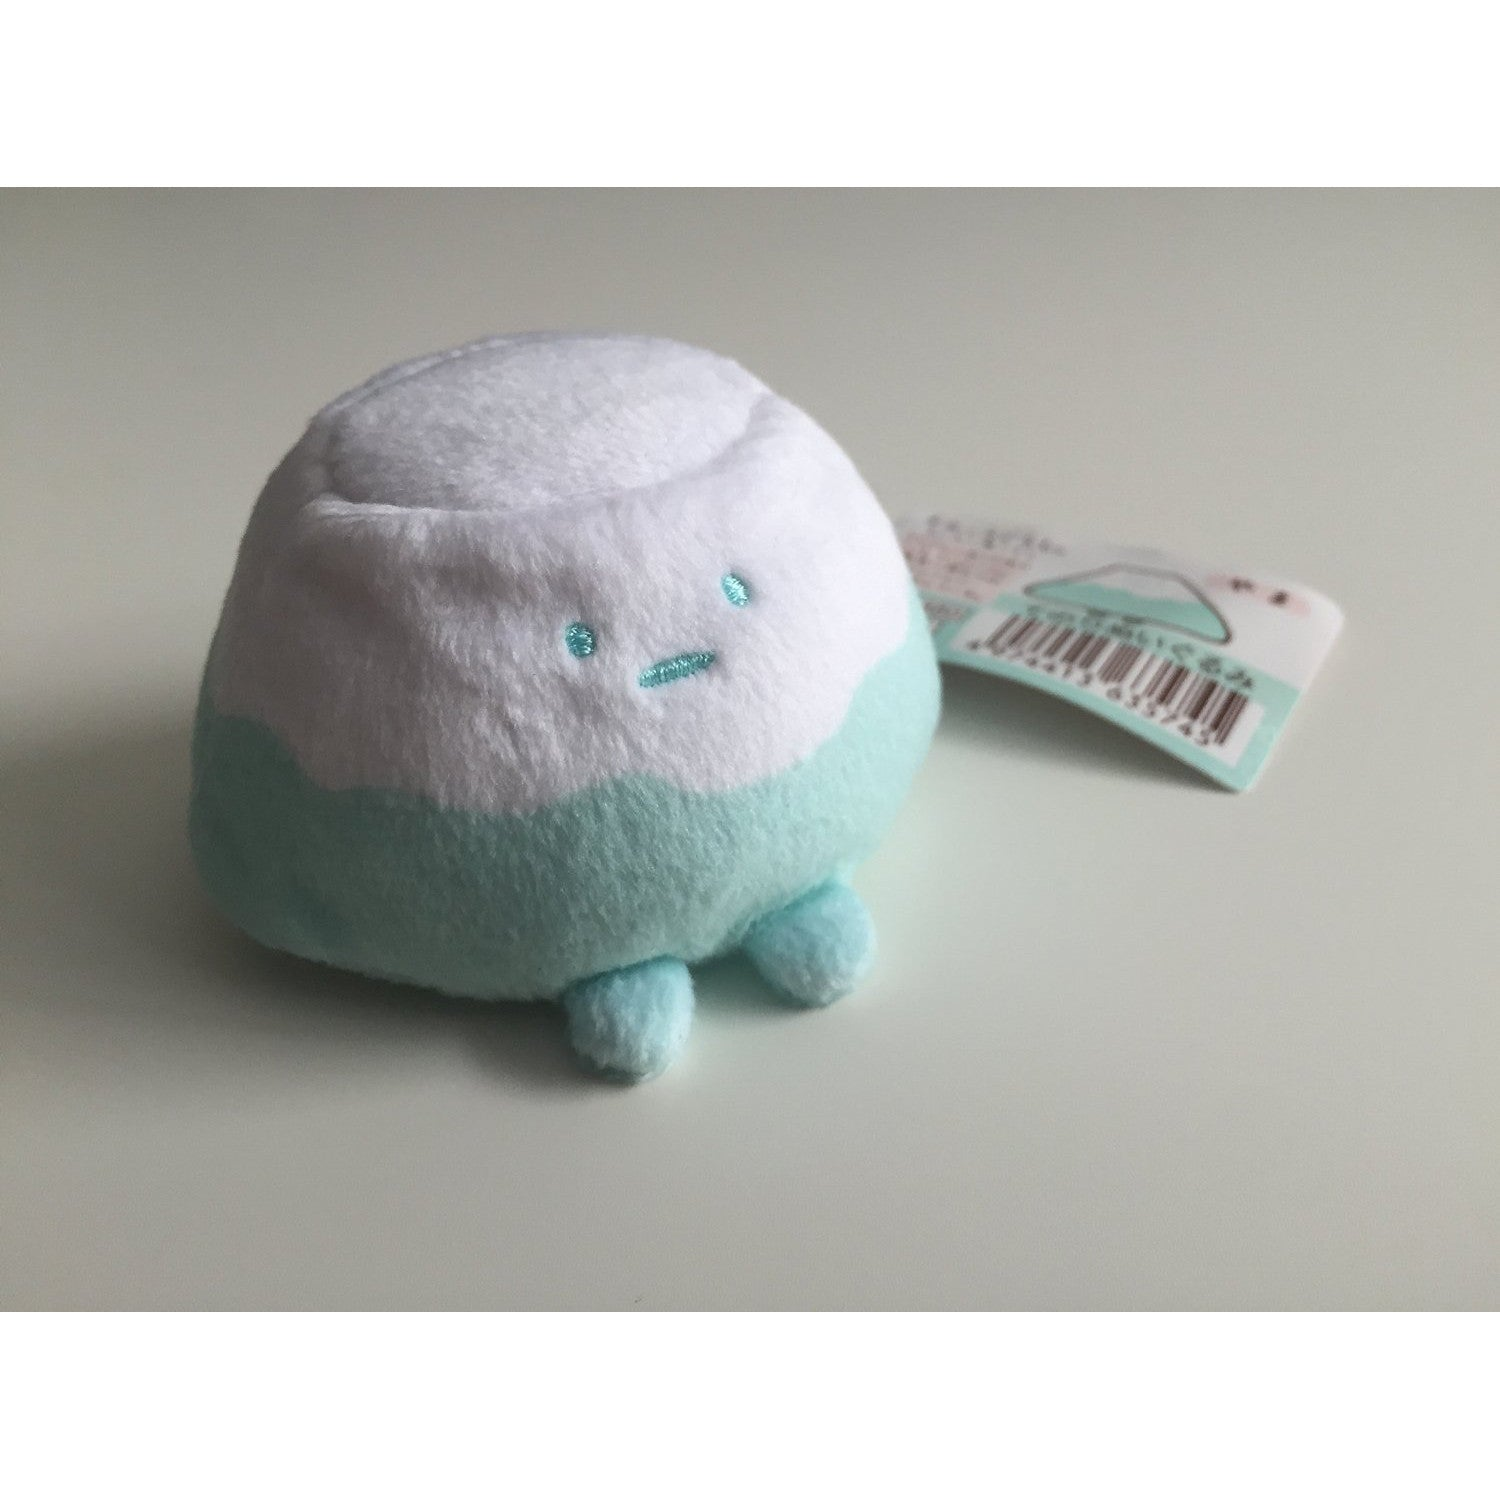 Sumikko Gurashi Tenori Plush Toy (Mountain)  Sumikko Gurashi Hot Springs MR05701